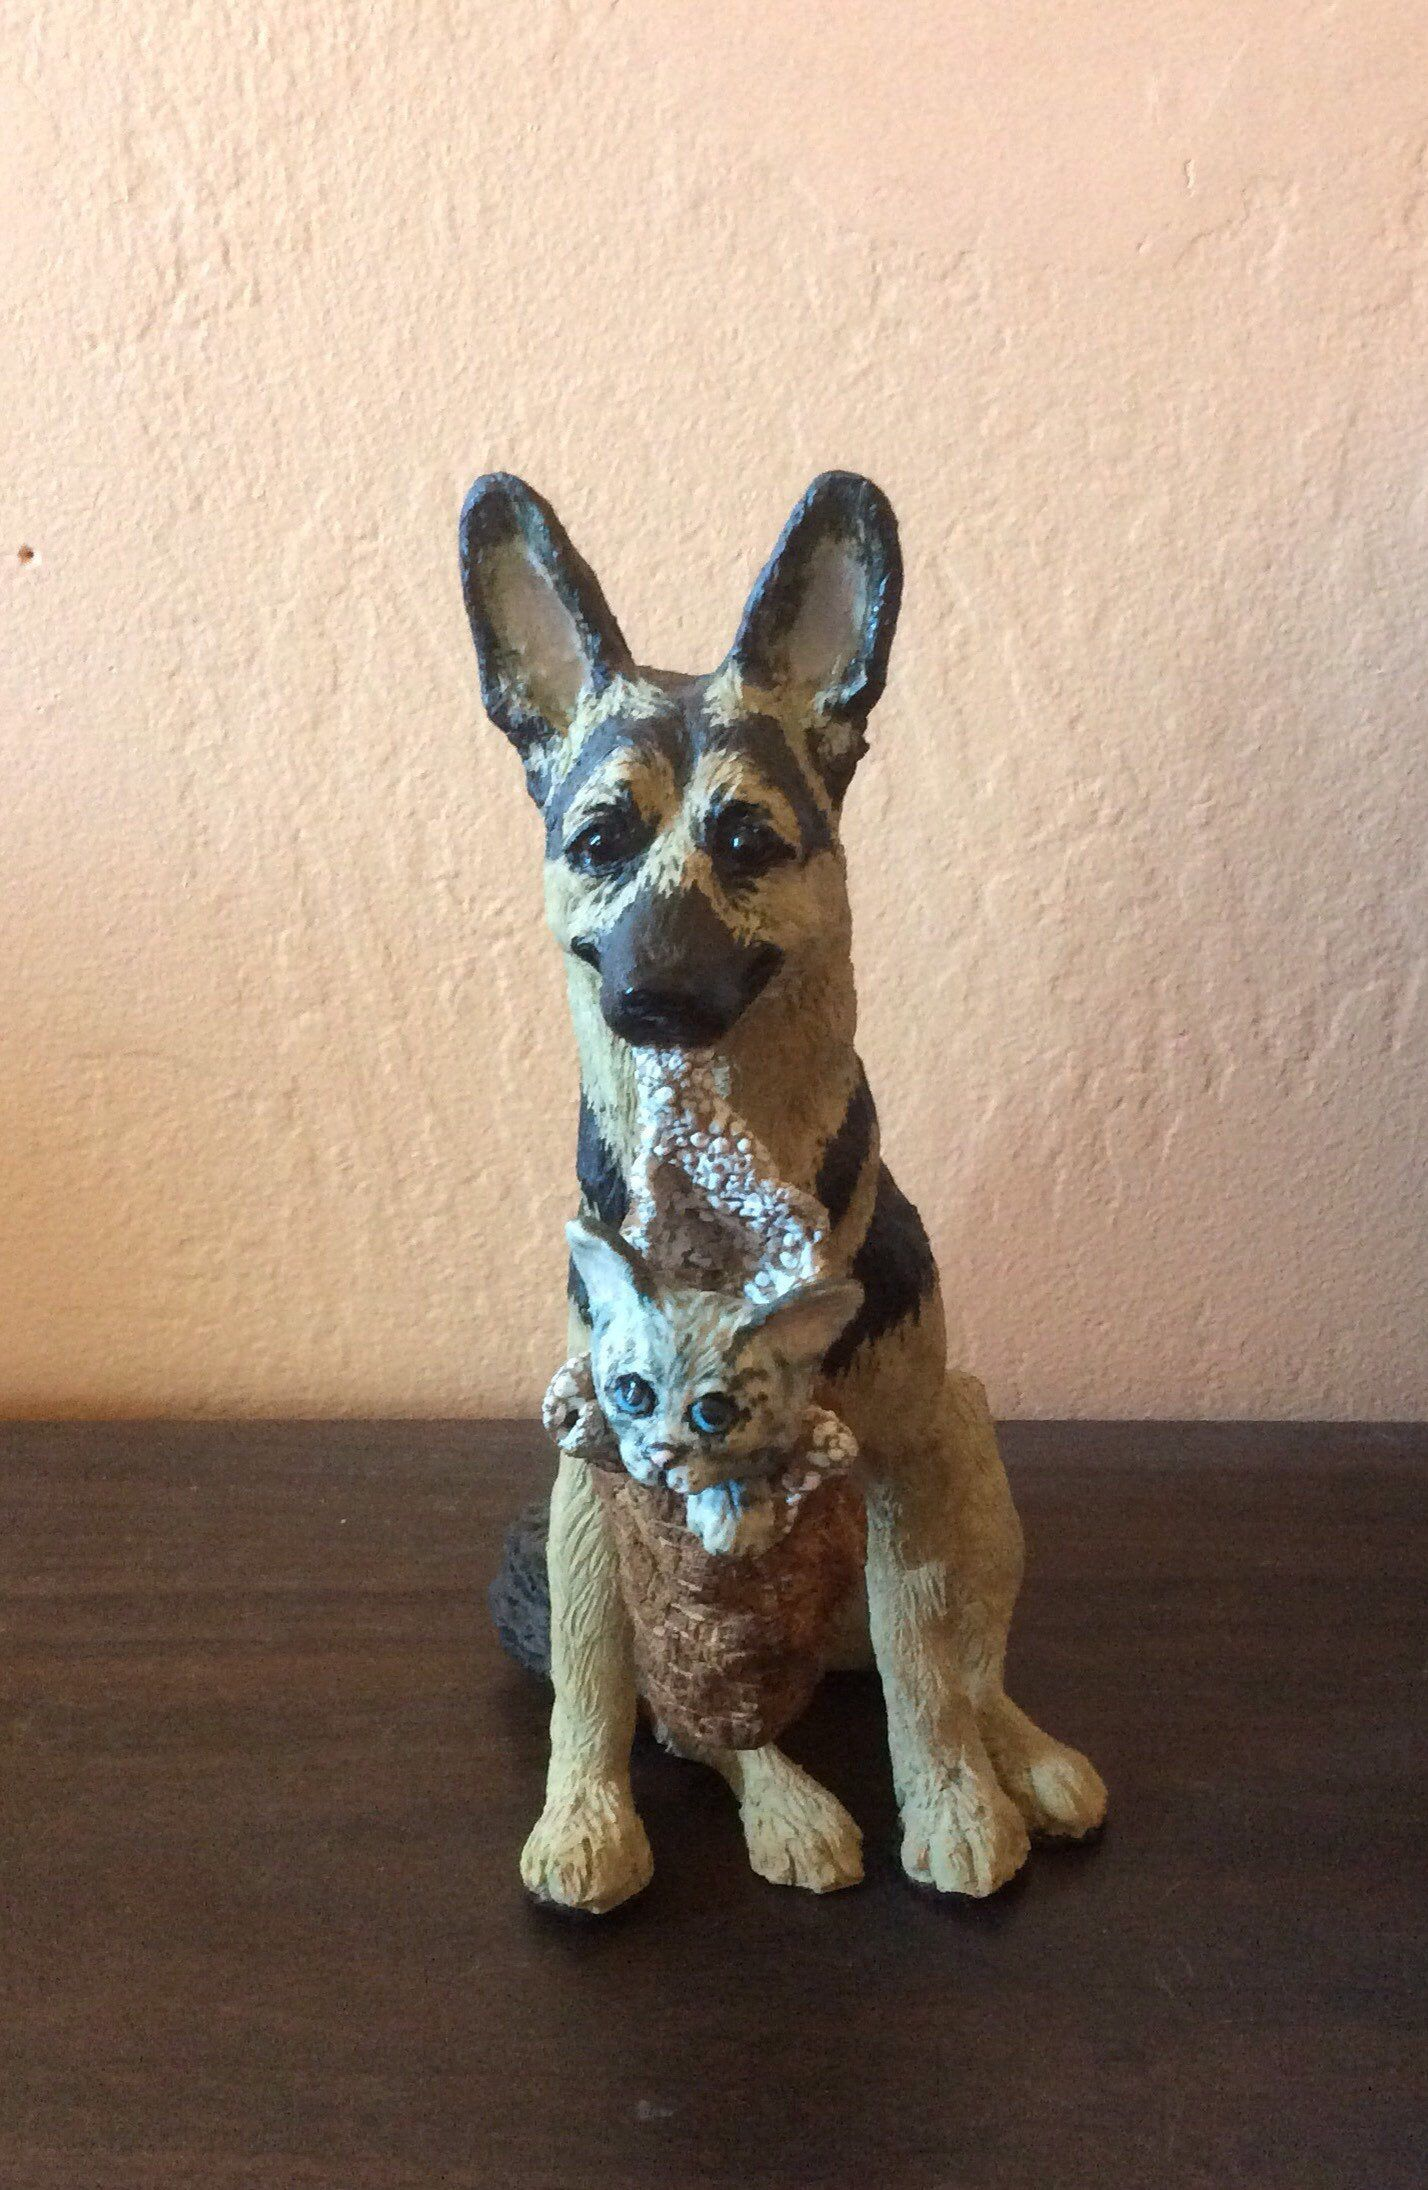 German Shepard with Kitty ceramic dog sculpture #germanshepards Excited to share this item from my #etsy shop: German Shepard with Kitty ceramic dog sculpture #germanshepards